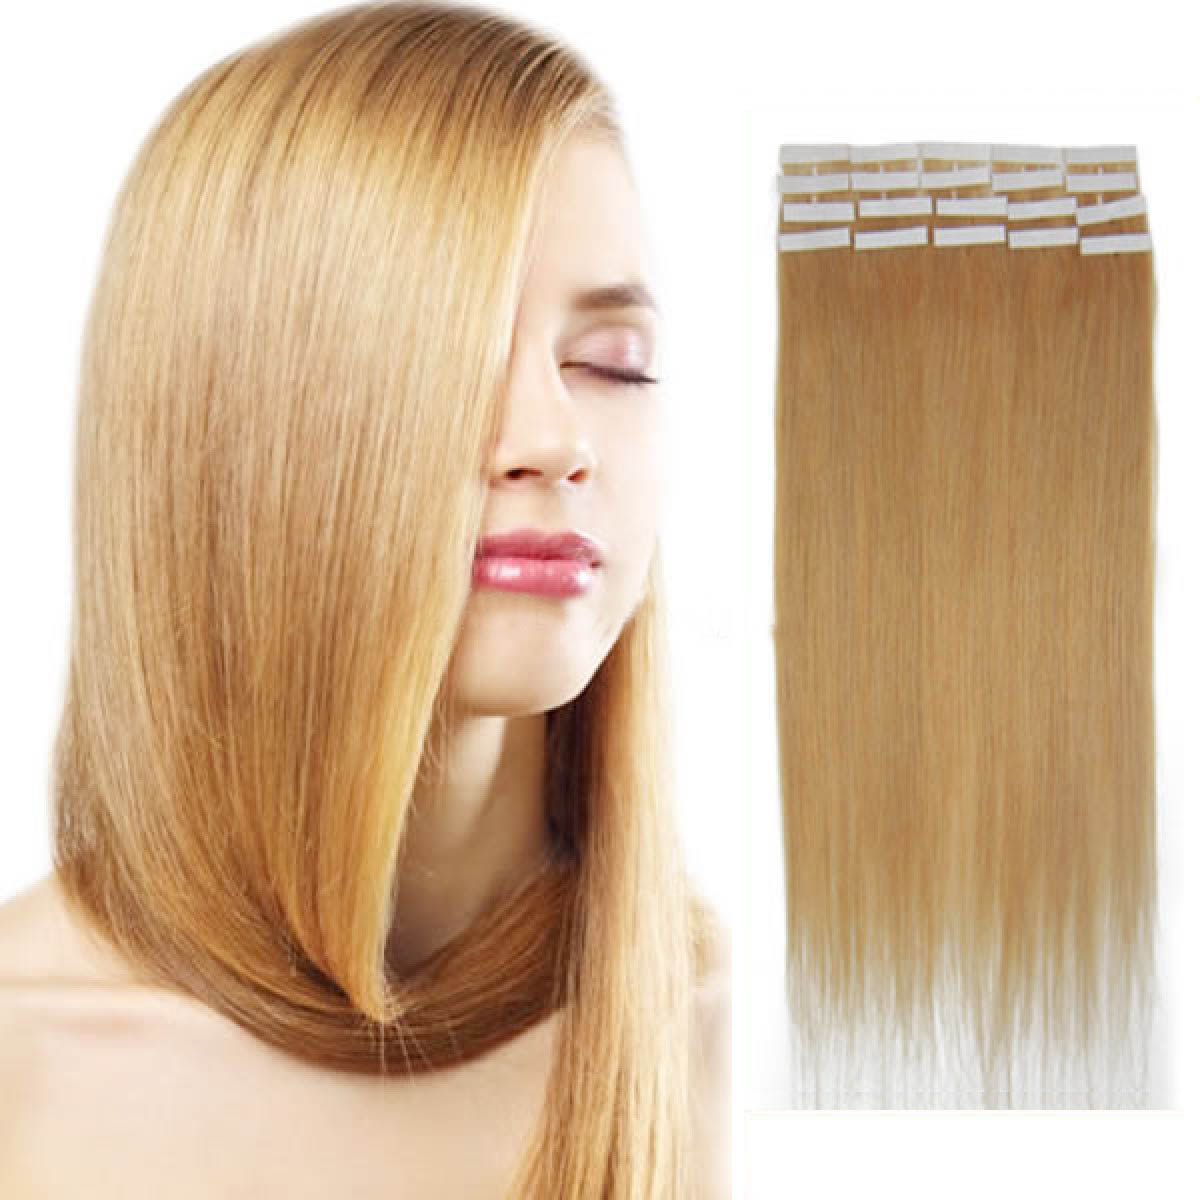 34 inch  27 strawberry blonde tape in human hair extensions 20pcs 11178 t